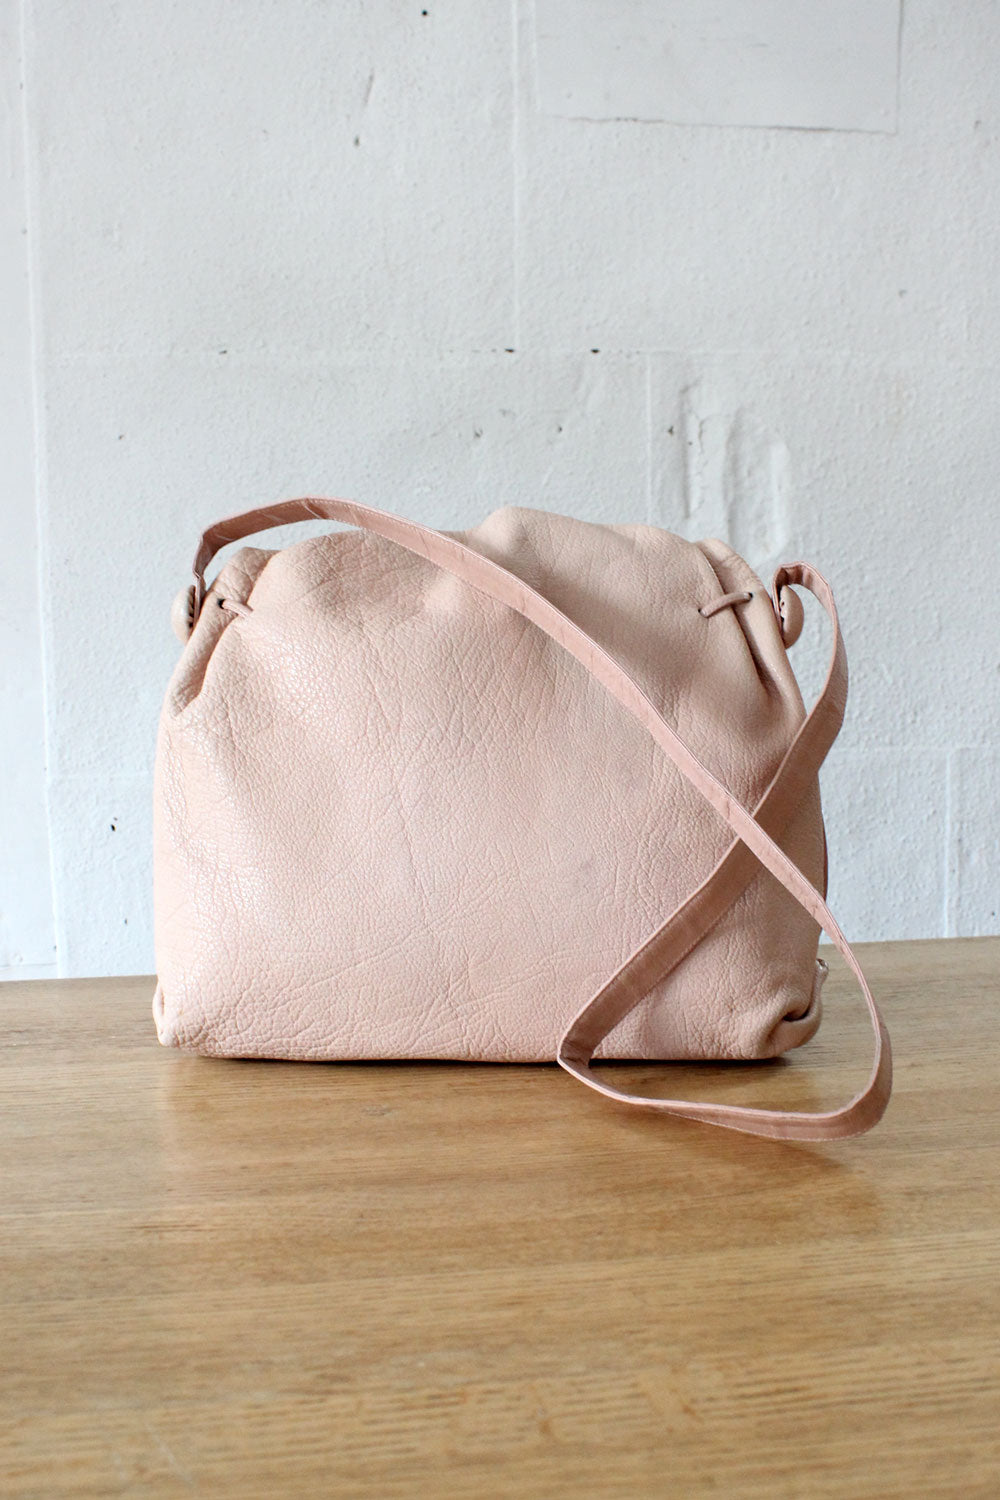 Blush Carlos Falchi Buffalo Bag